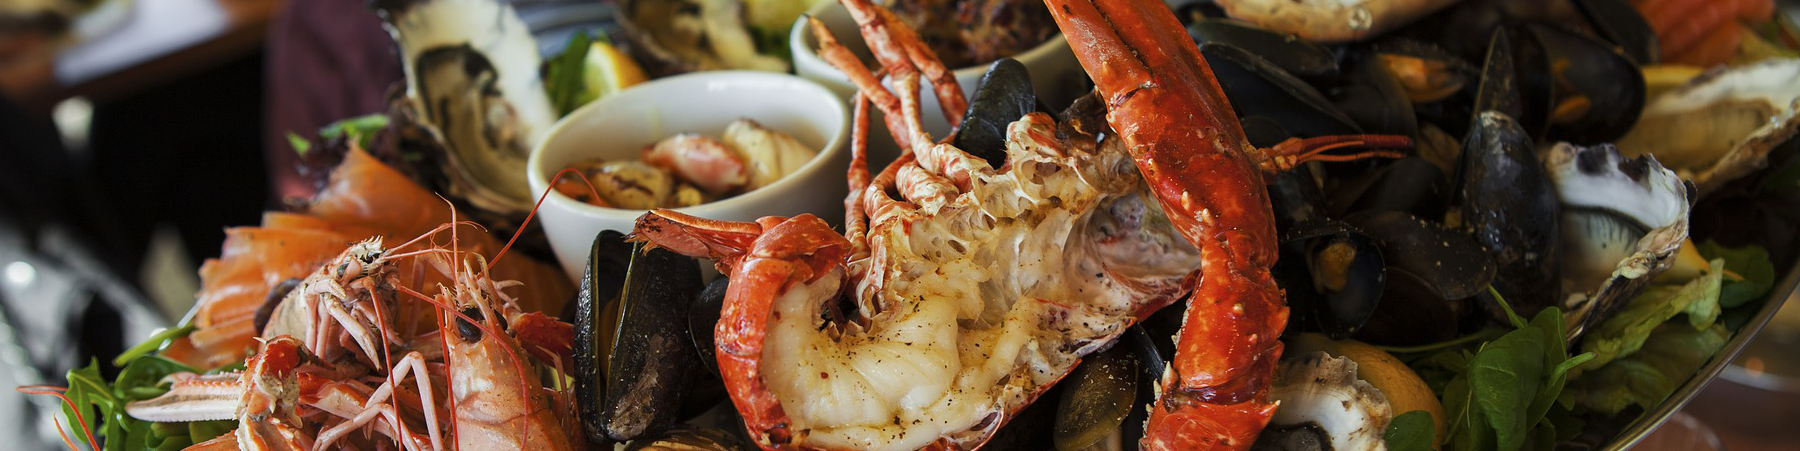 Image of seafood platter